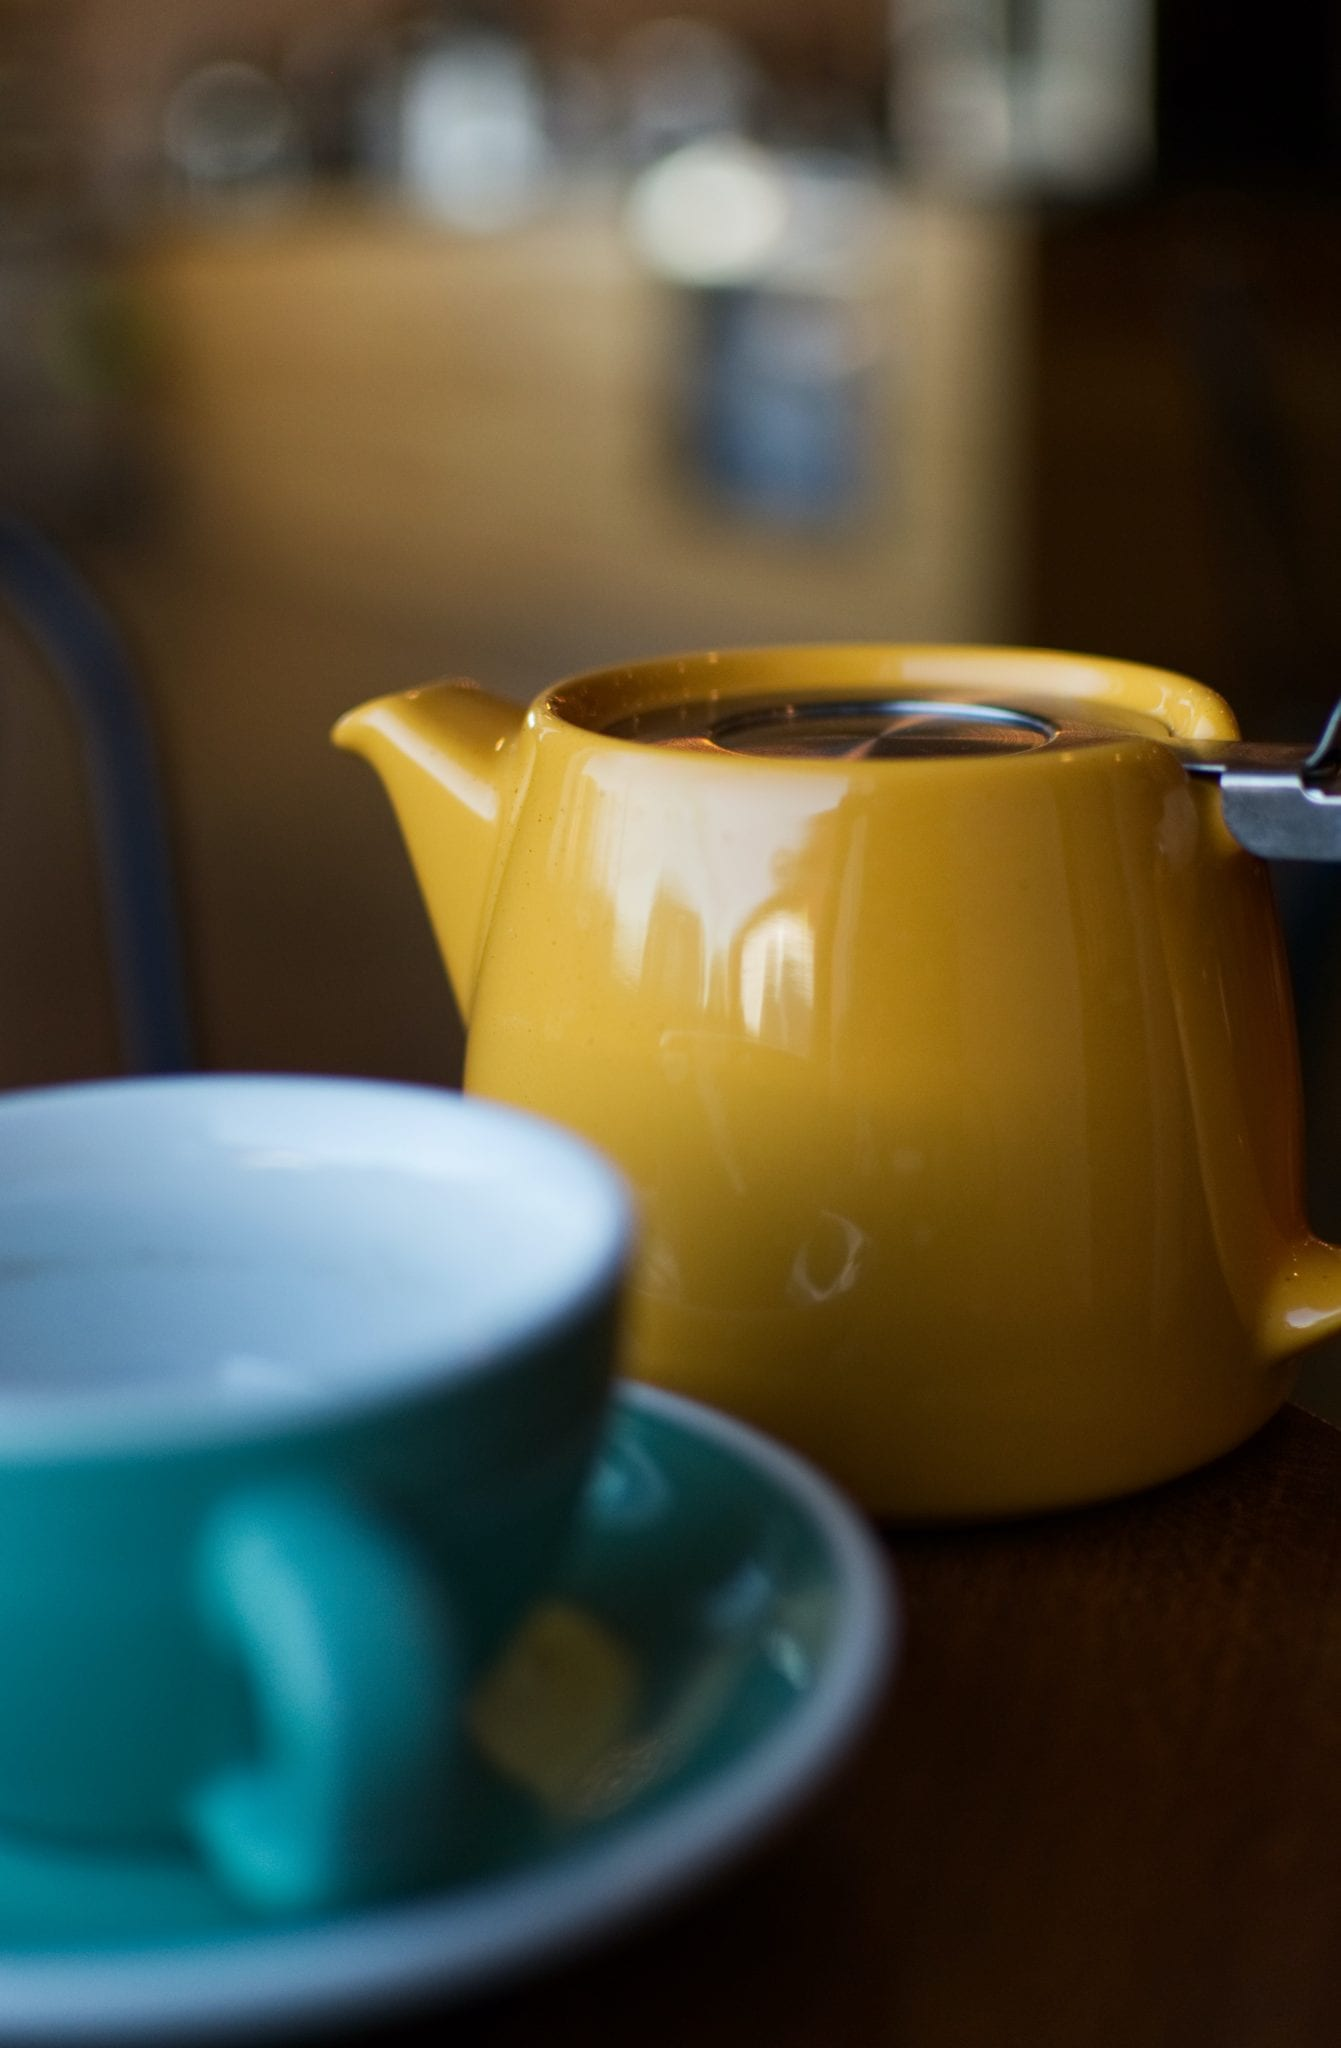 shallow focus photography of yellow ceramic teapot